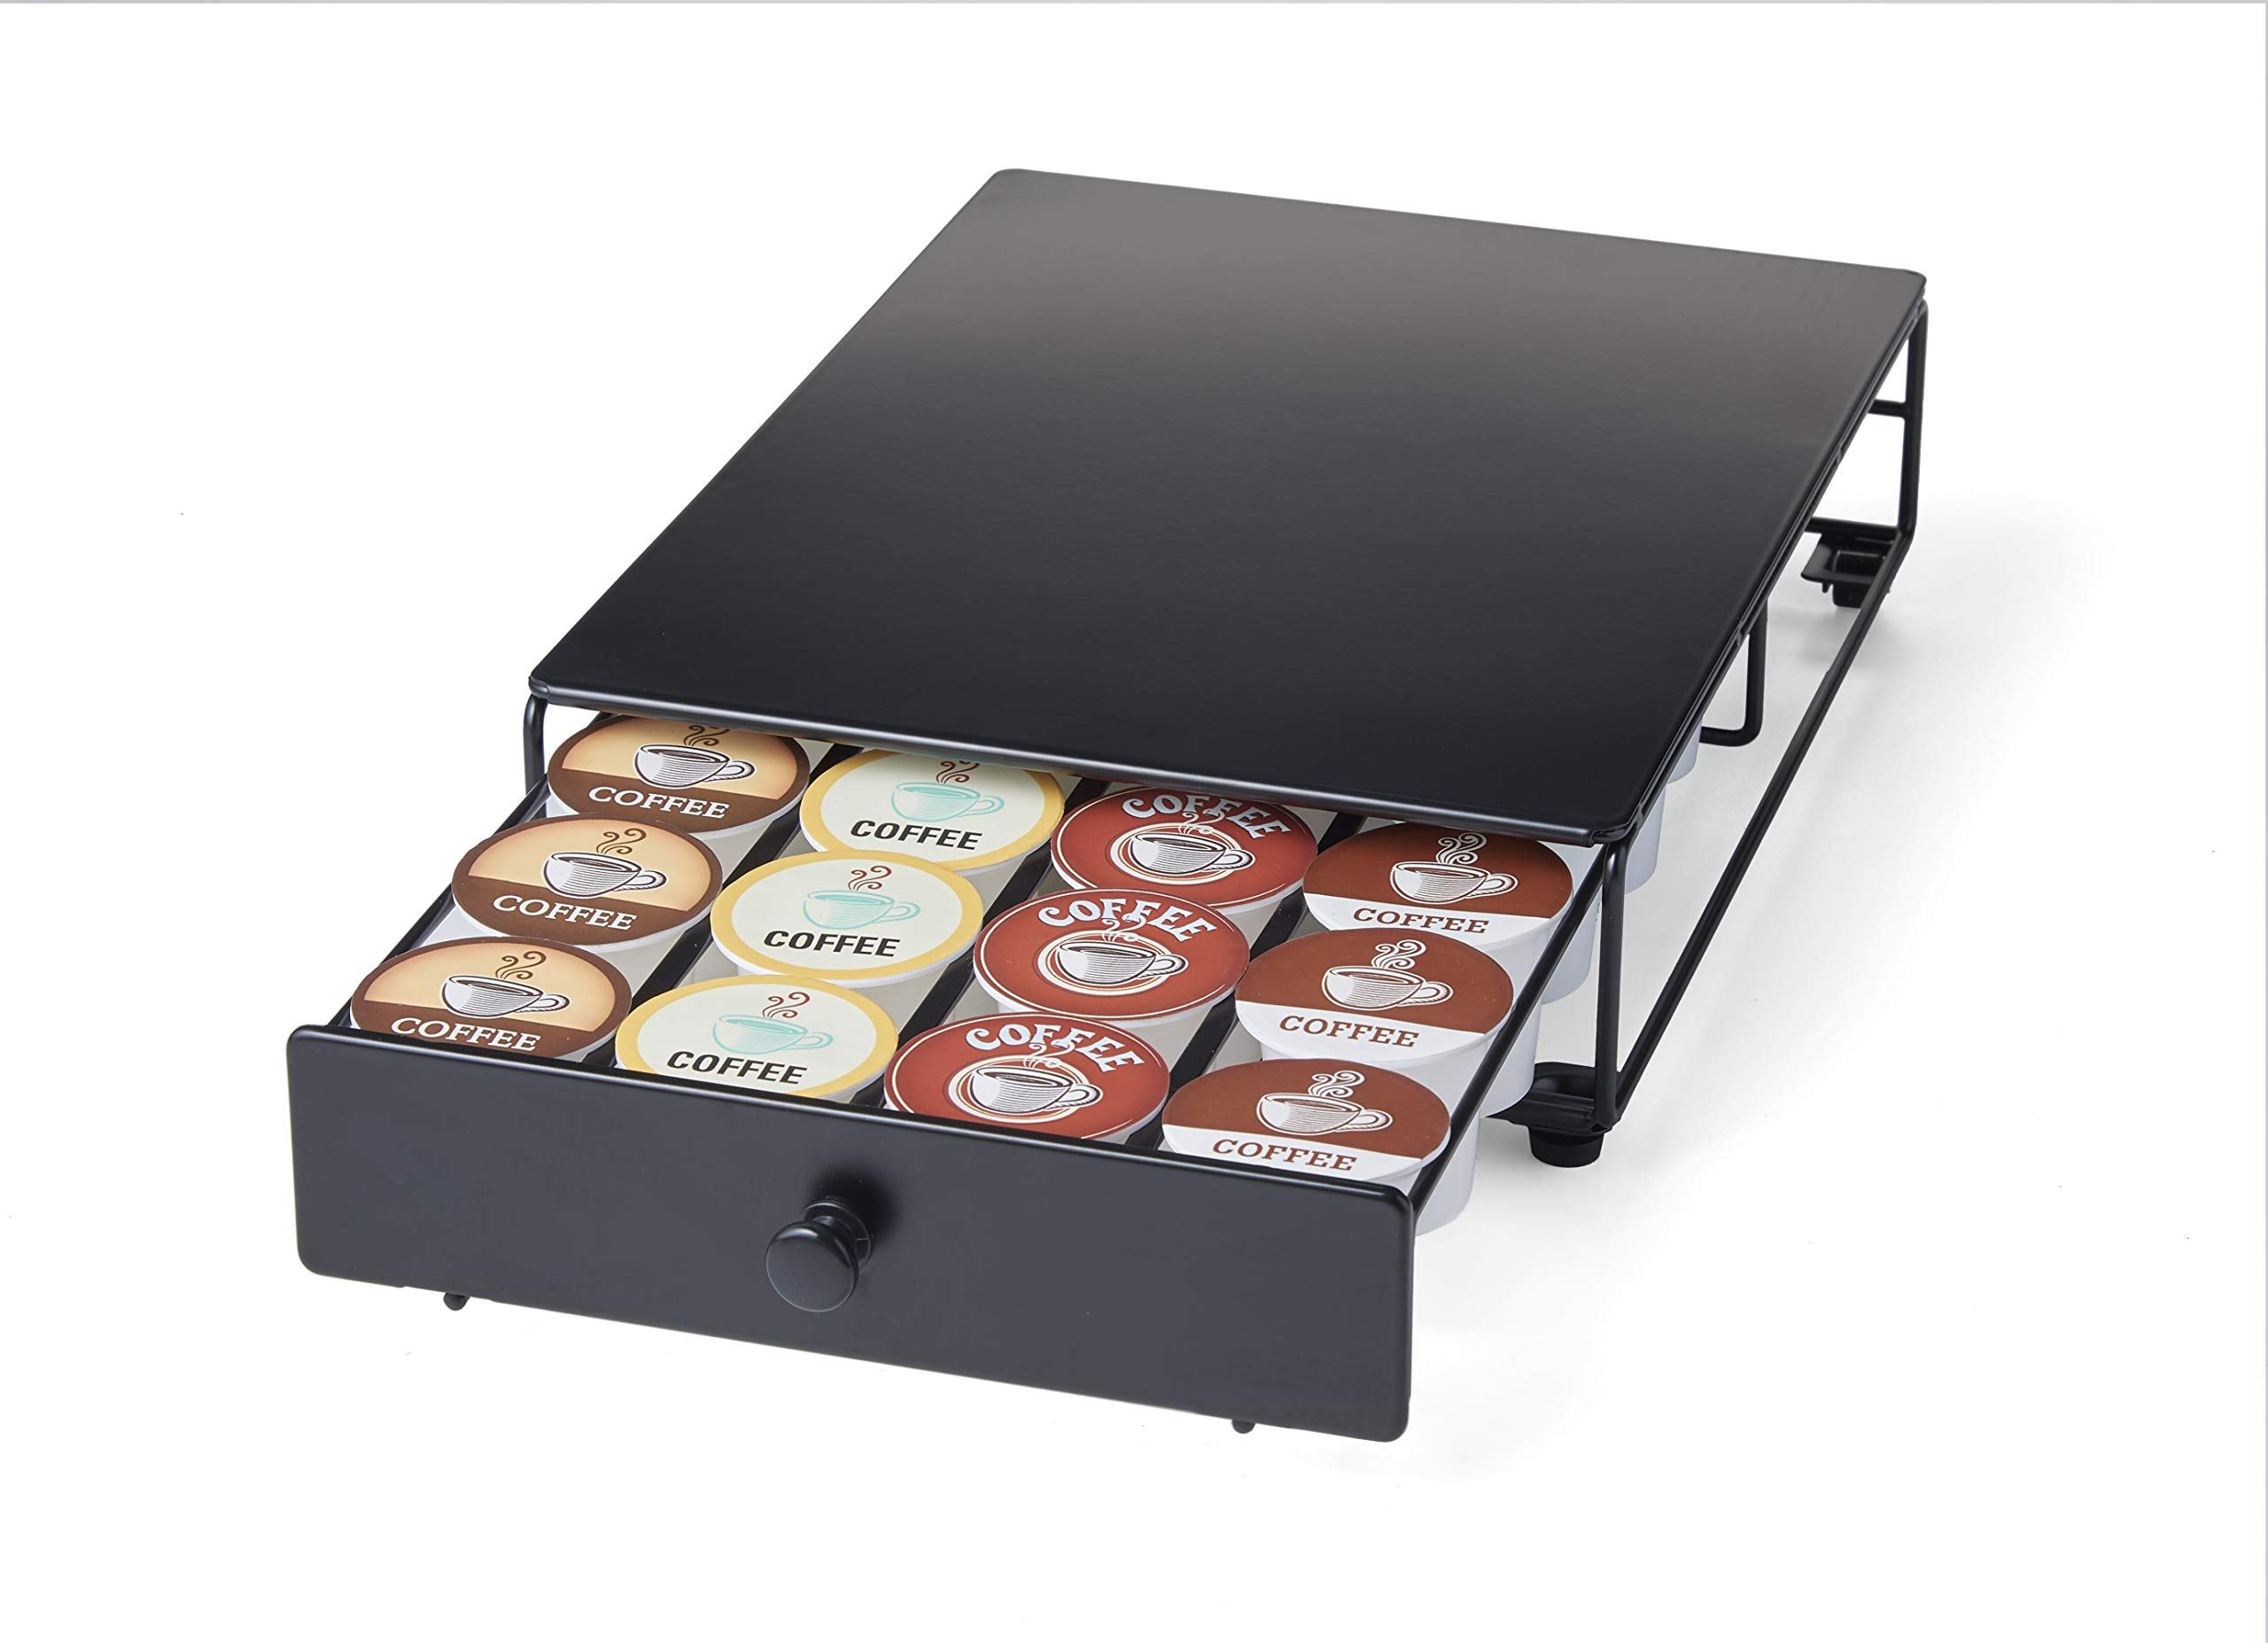 Nifty Home Products 24 Coffee Pod Capacity Storage Drawer Rolling K-Cup Holder, 12.75x8.25x3, Black by Nifty Home Products